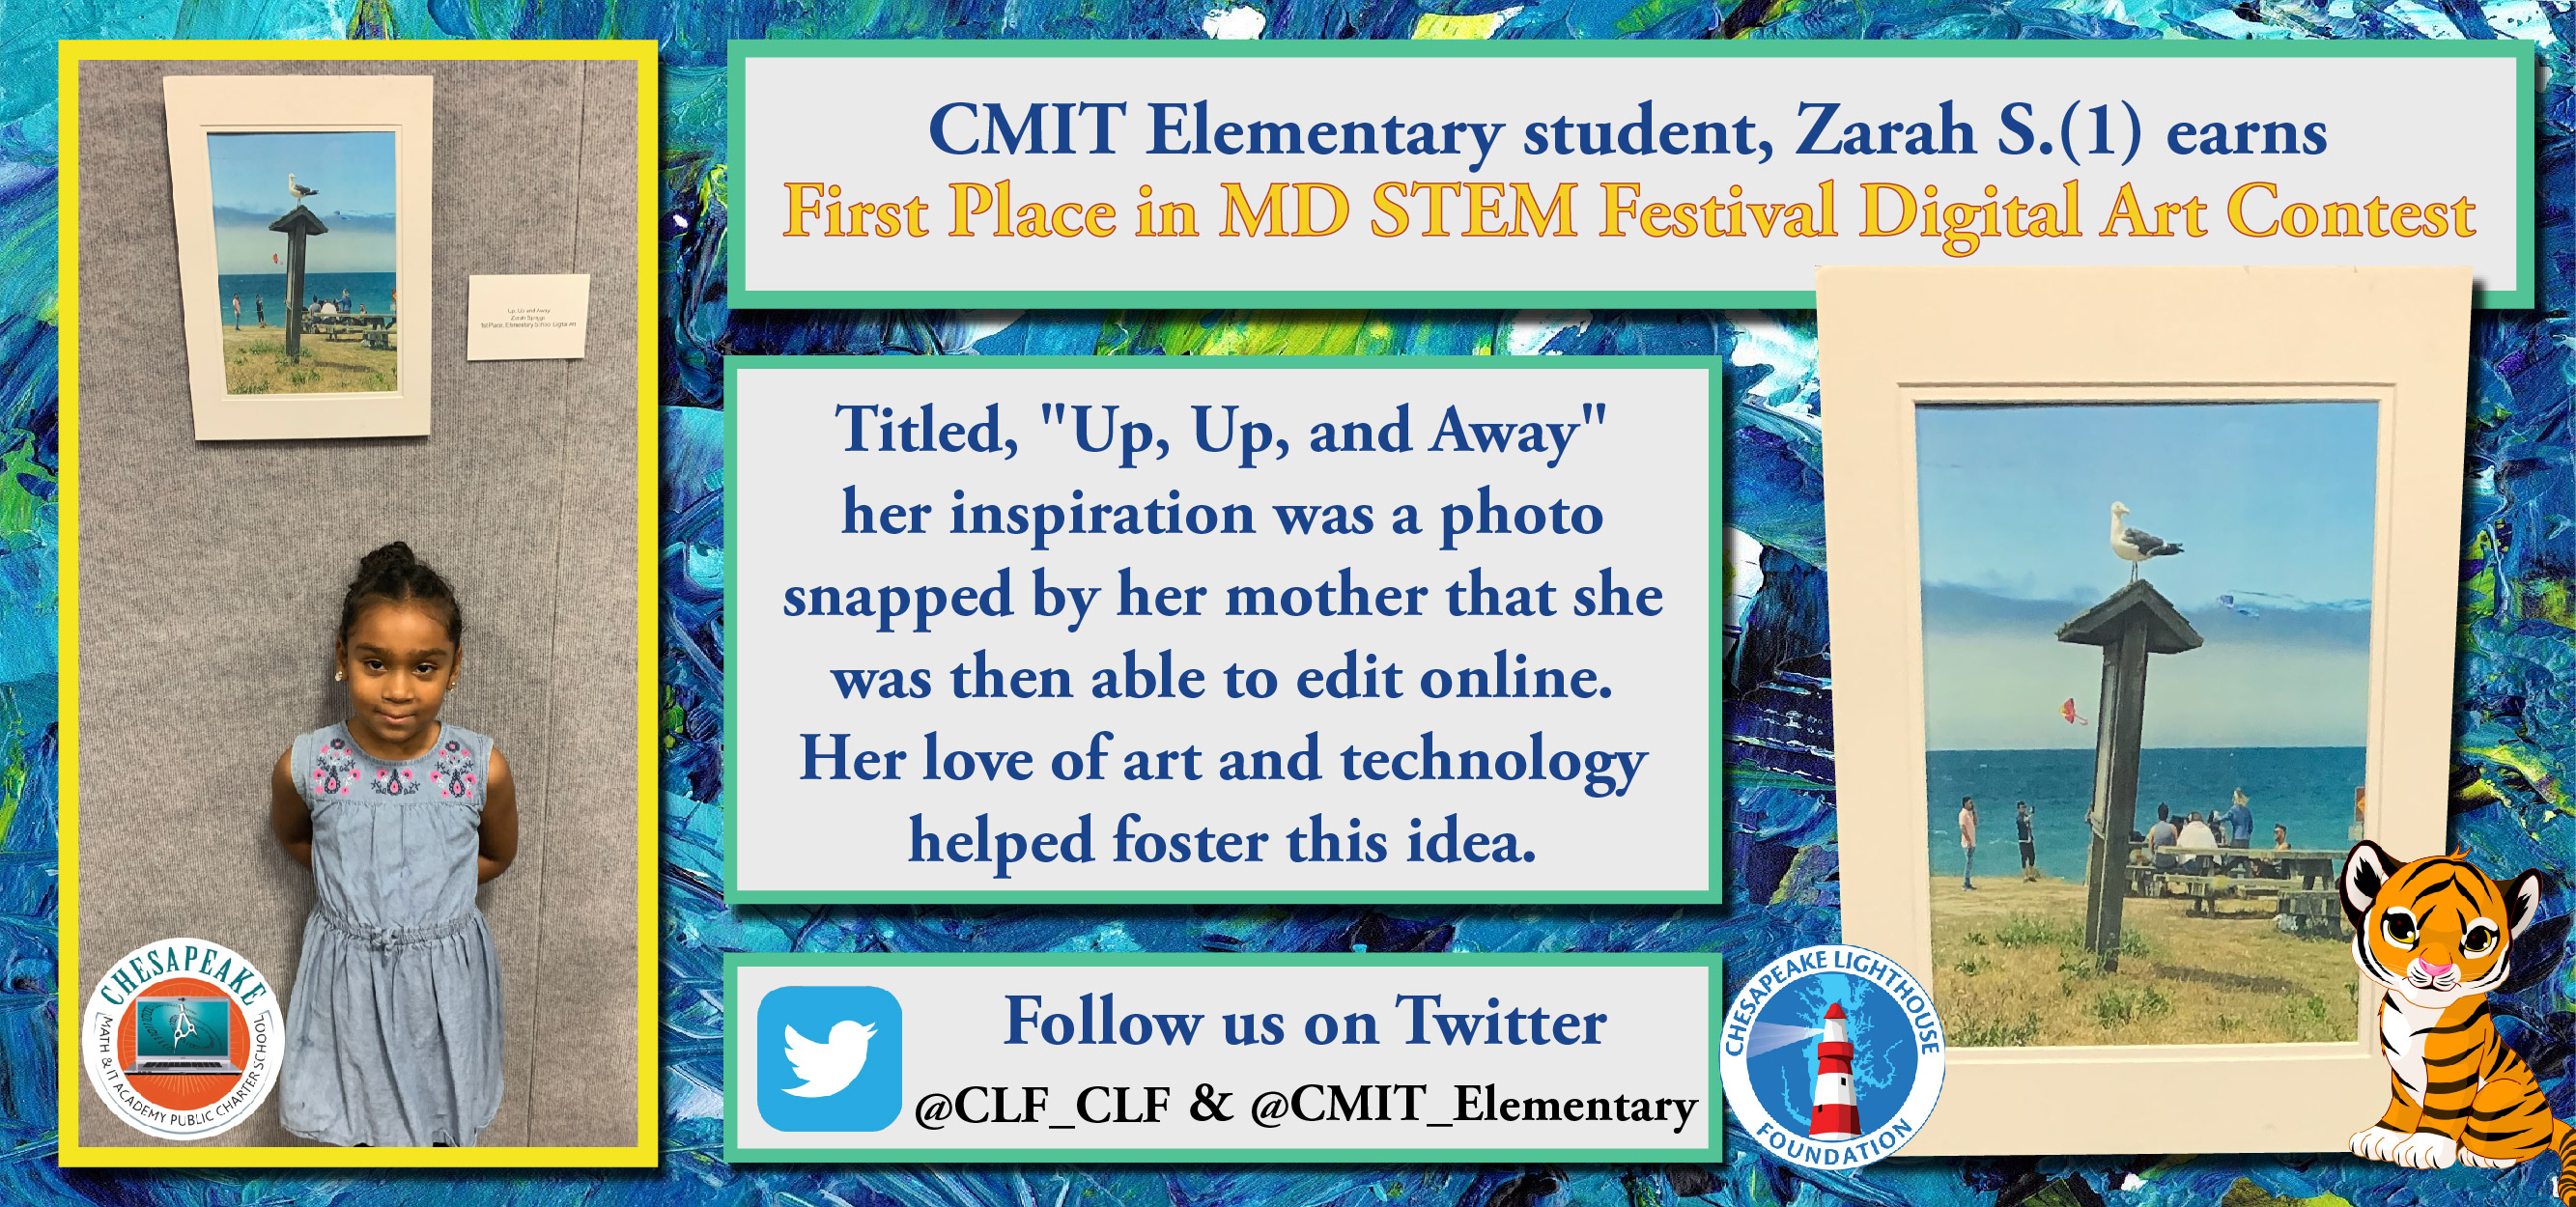 CMIT North Elementary 1st Grader wins 1st Place in MD STEM Festival Digital Art Contest